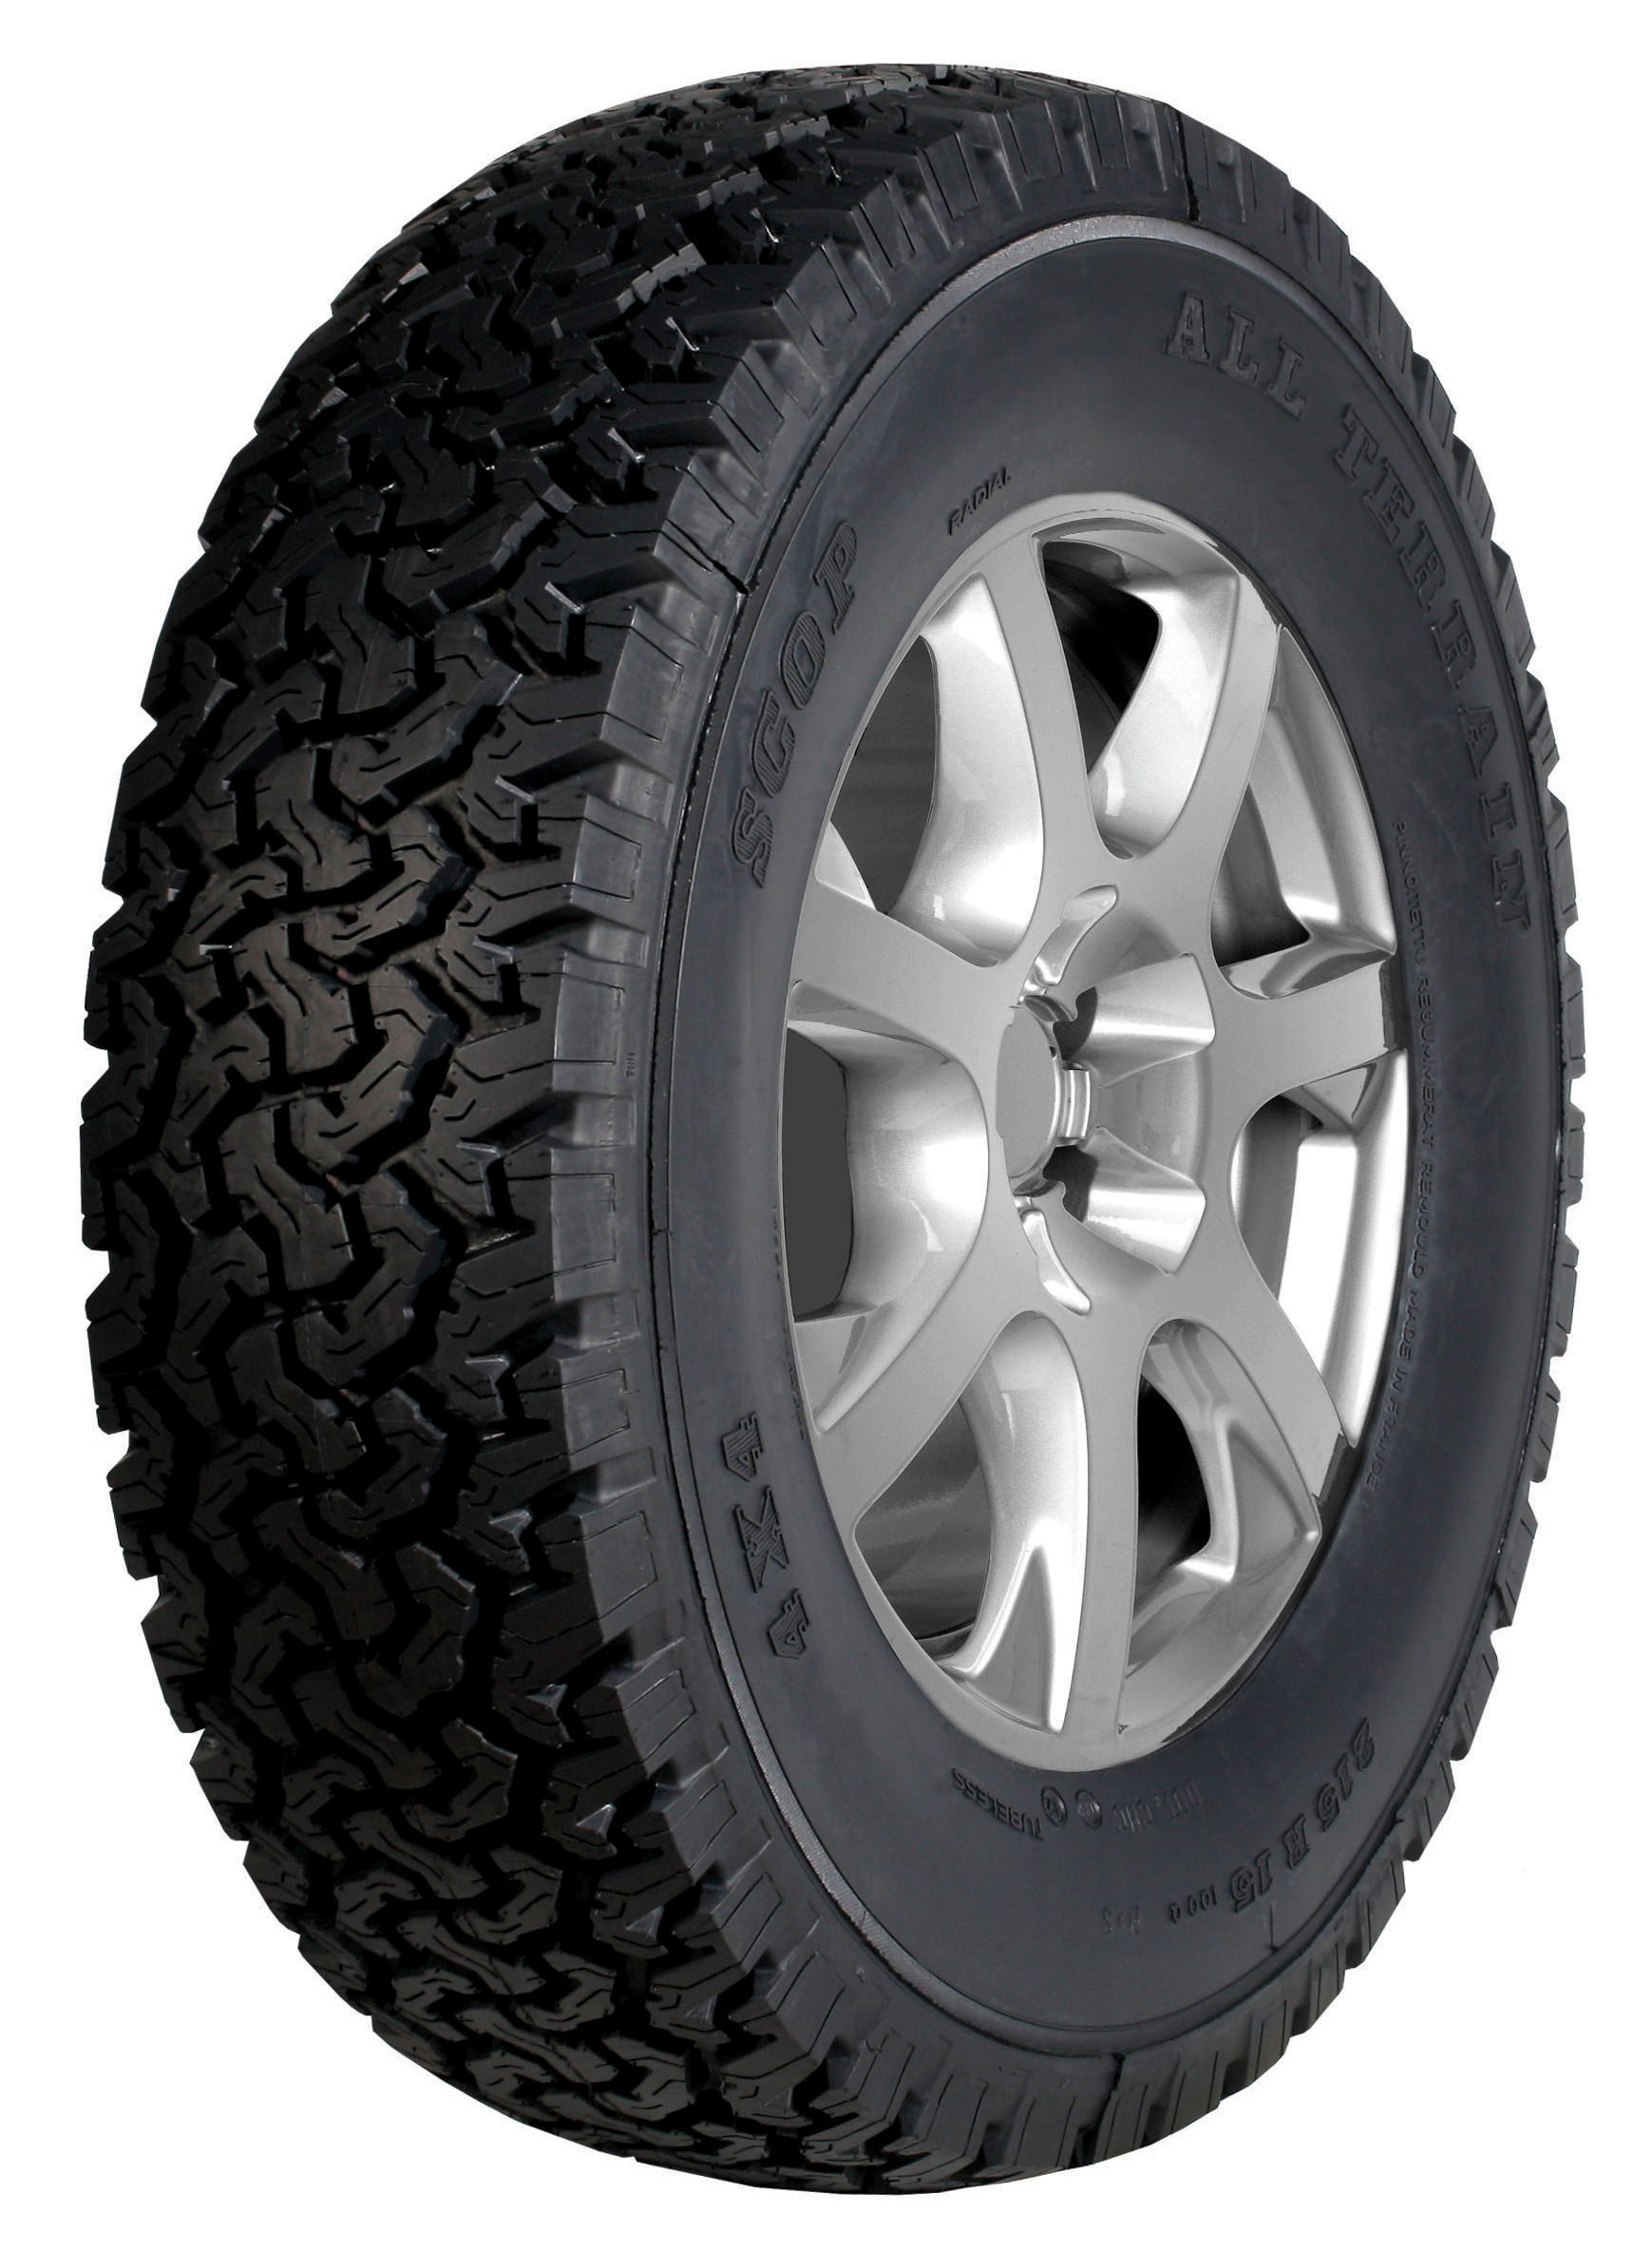 Anvelopa All Season 205/80R16 104S Scop All Terrain Reconstruite